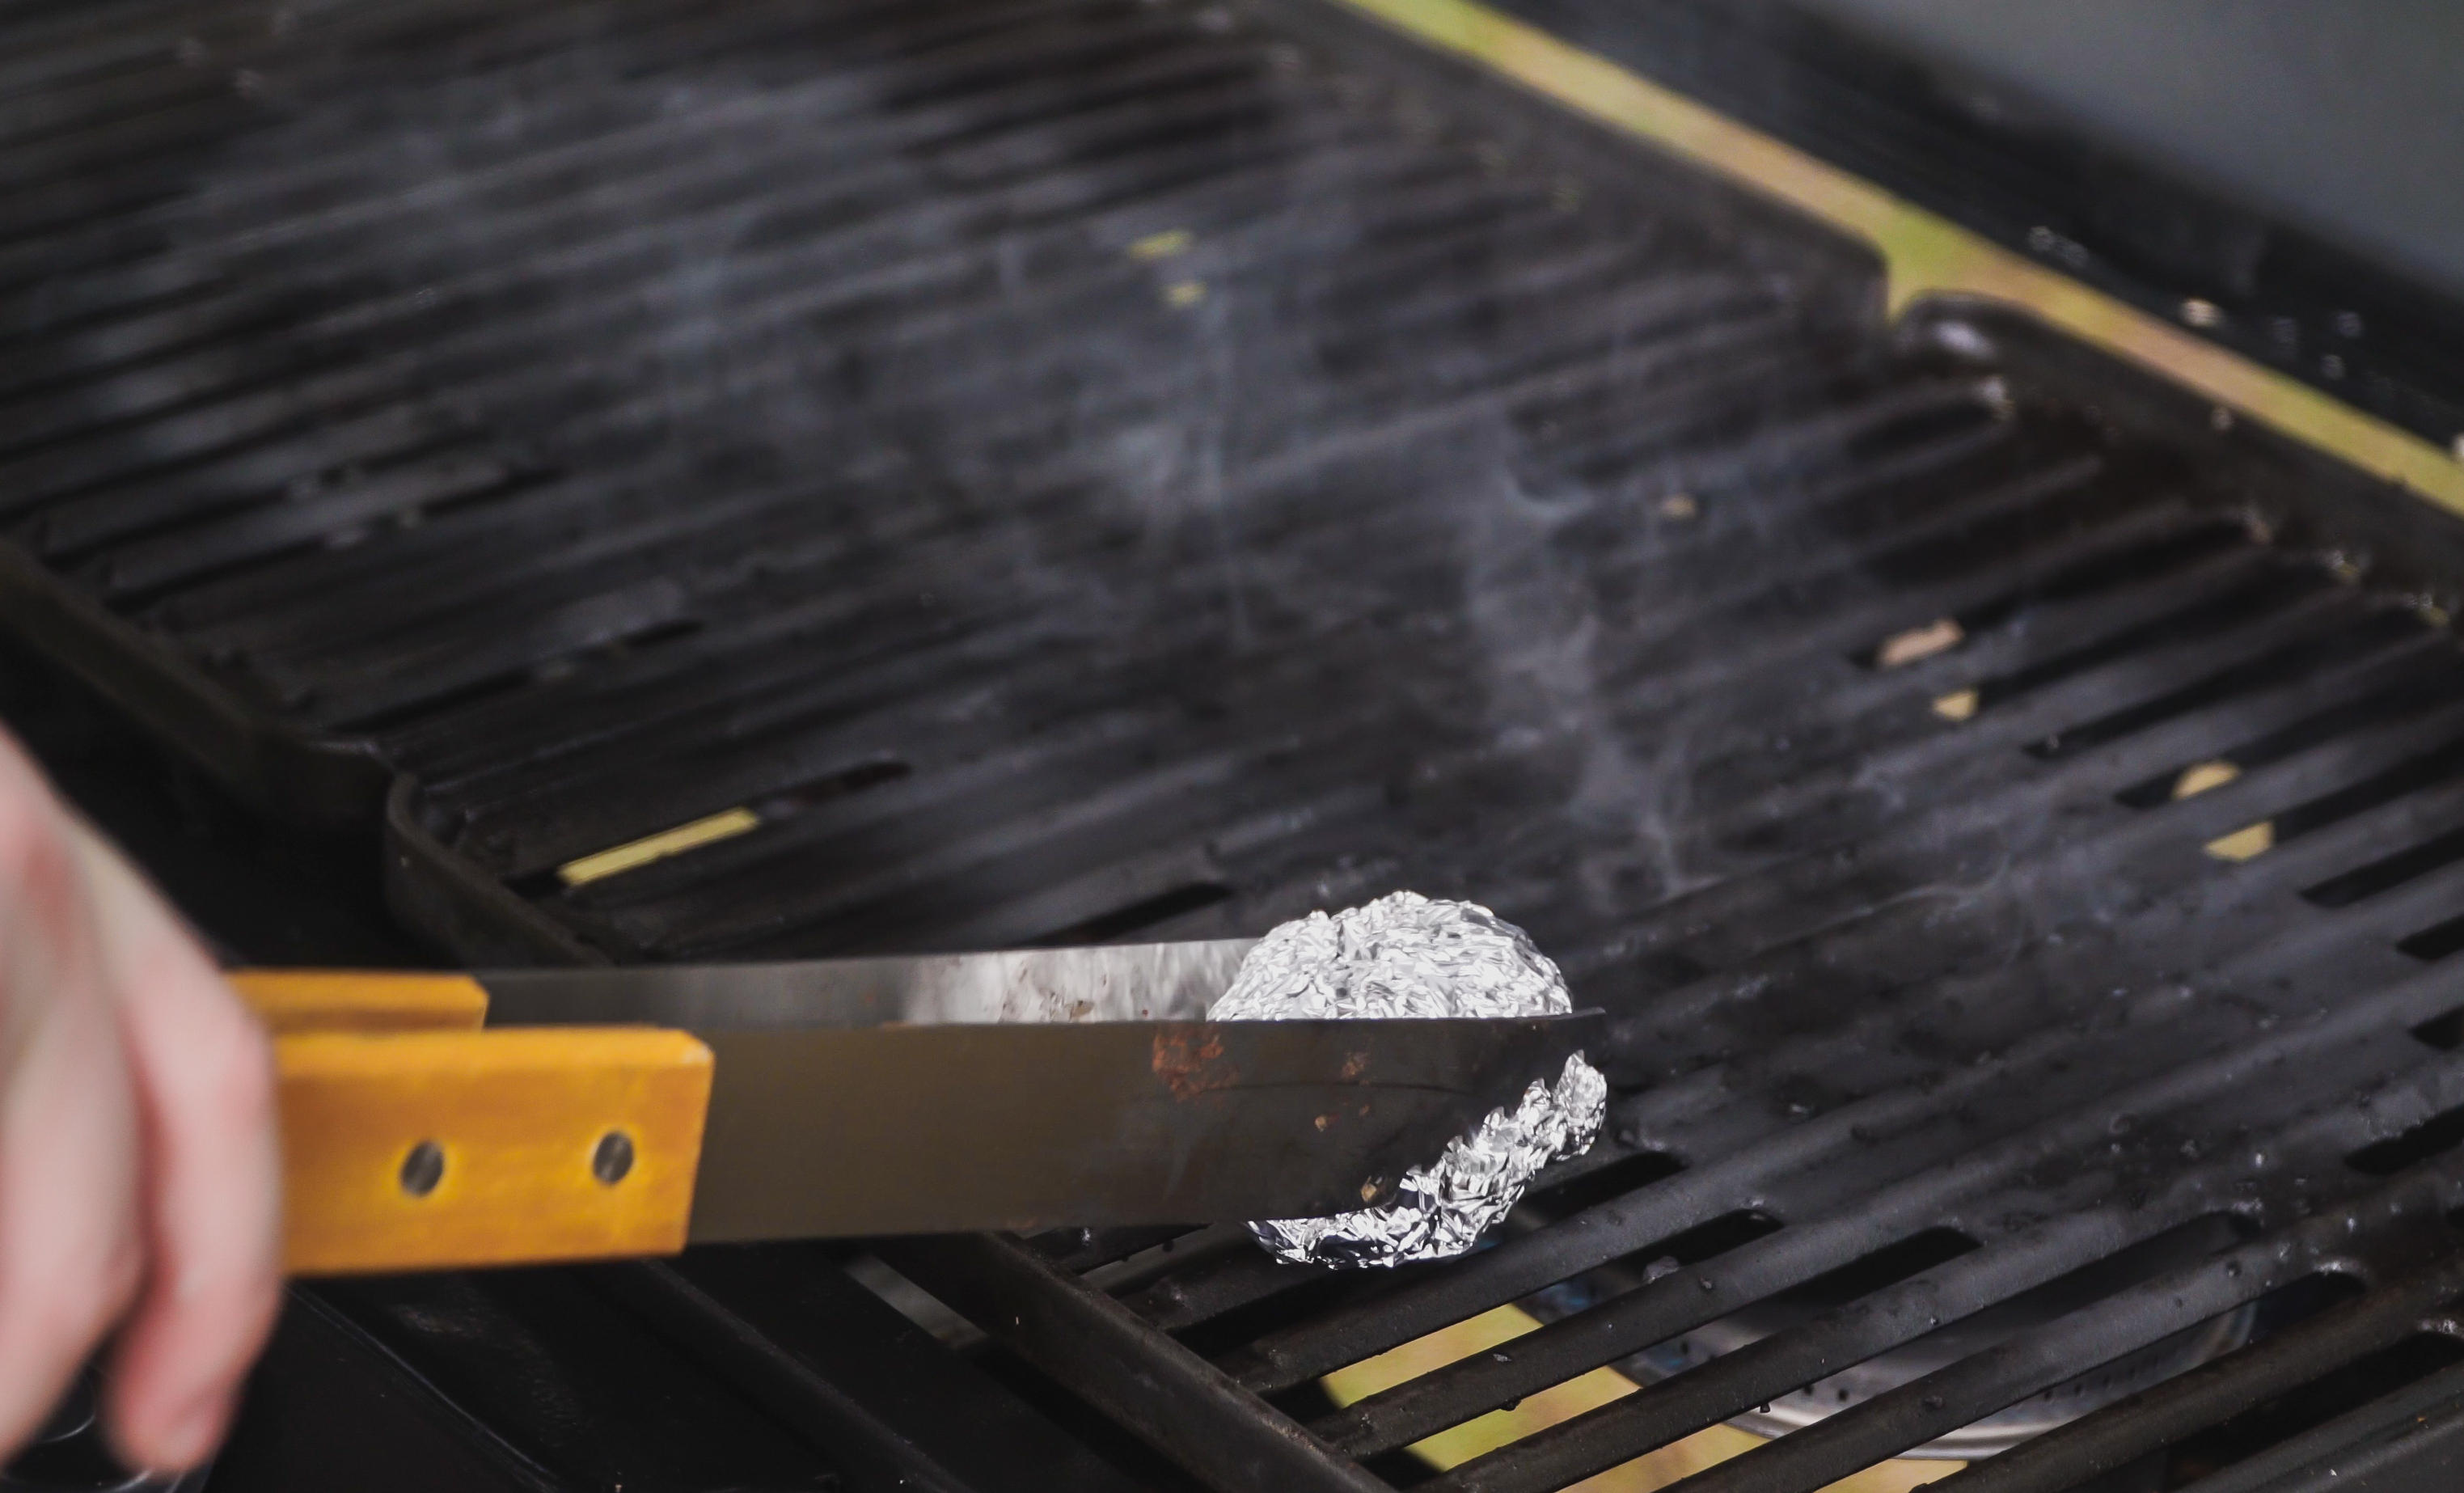 2 Quick Ways To Clean Your Grill Without A Grill Brush Cnet